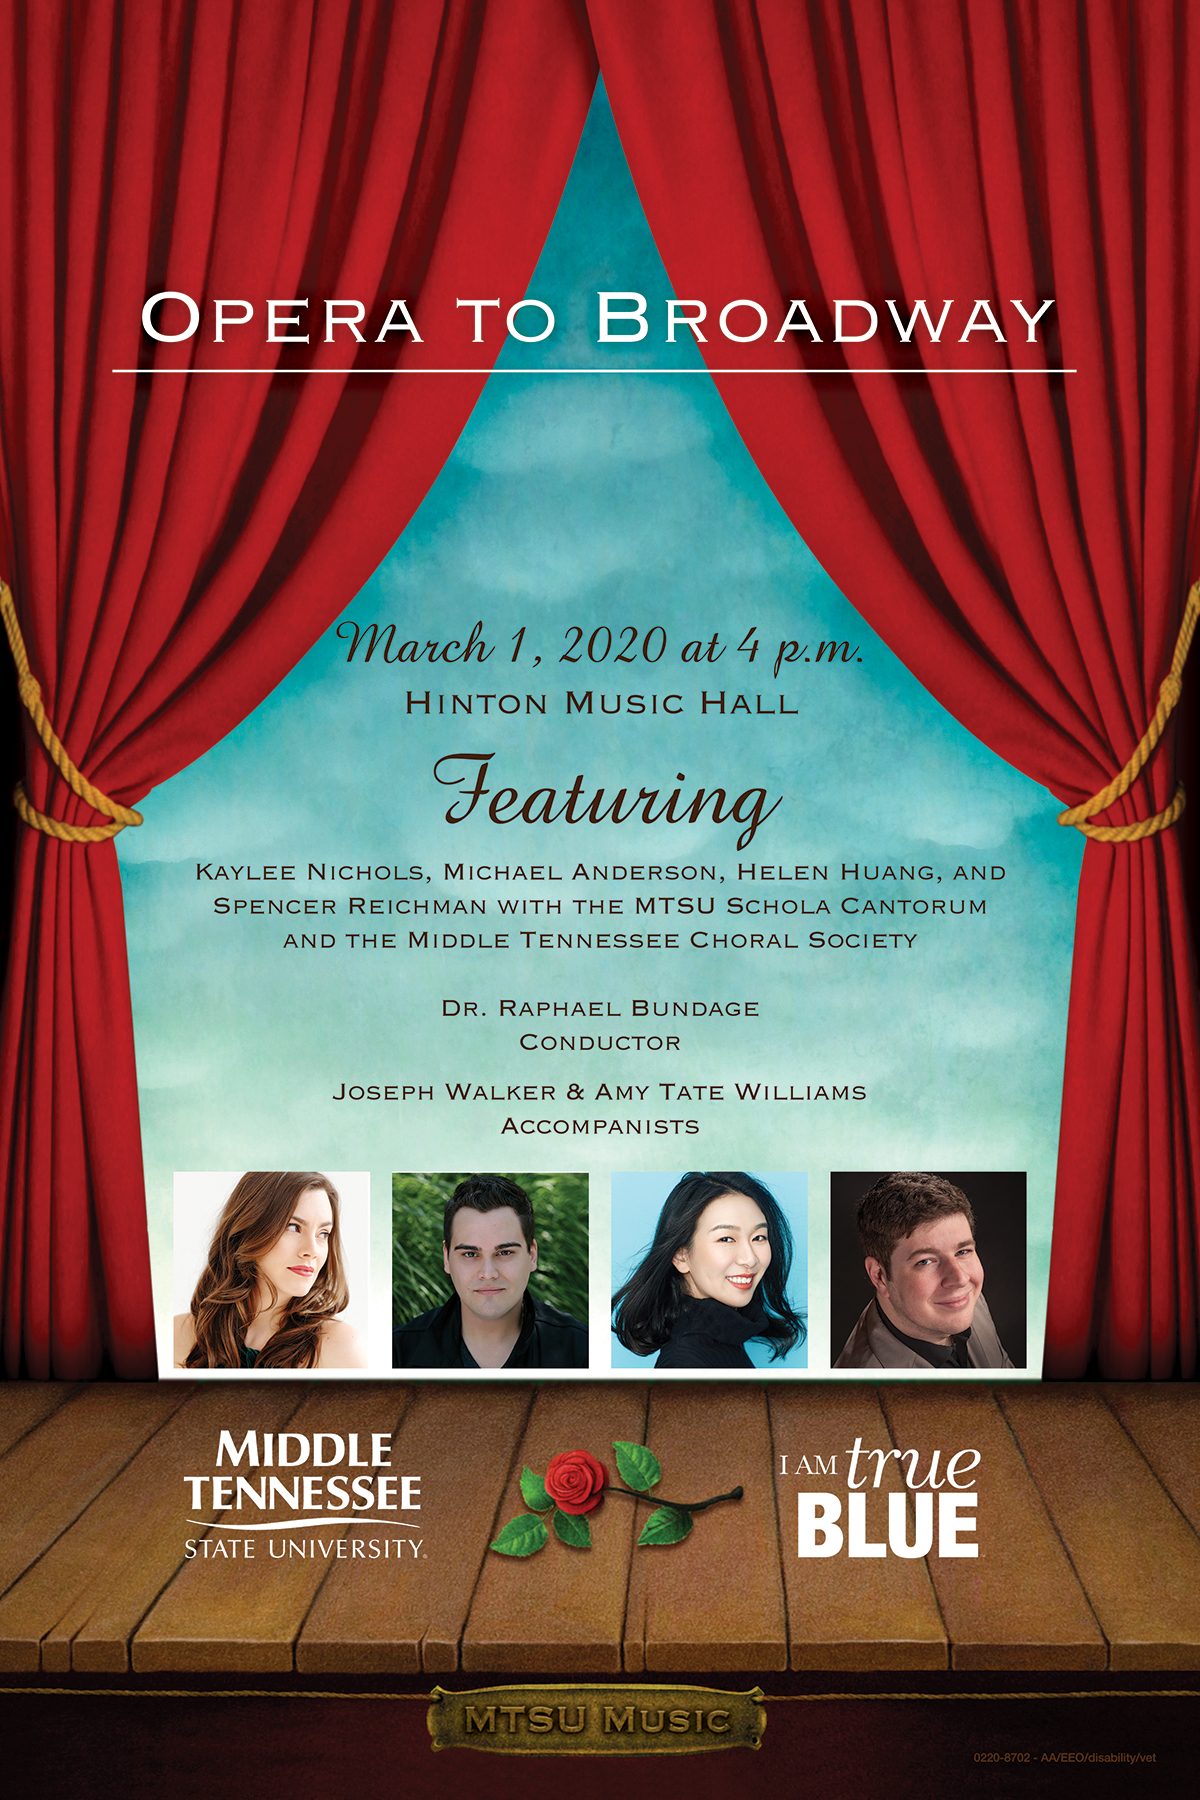 """Poster for the 2020 """"Opera to Broadway"""" concert featuring the MTSU Schola Cantorum, Middle Tennessee Choral Society and guest artists from the Nashville Opera."""